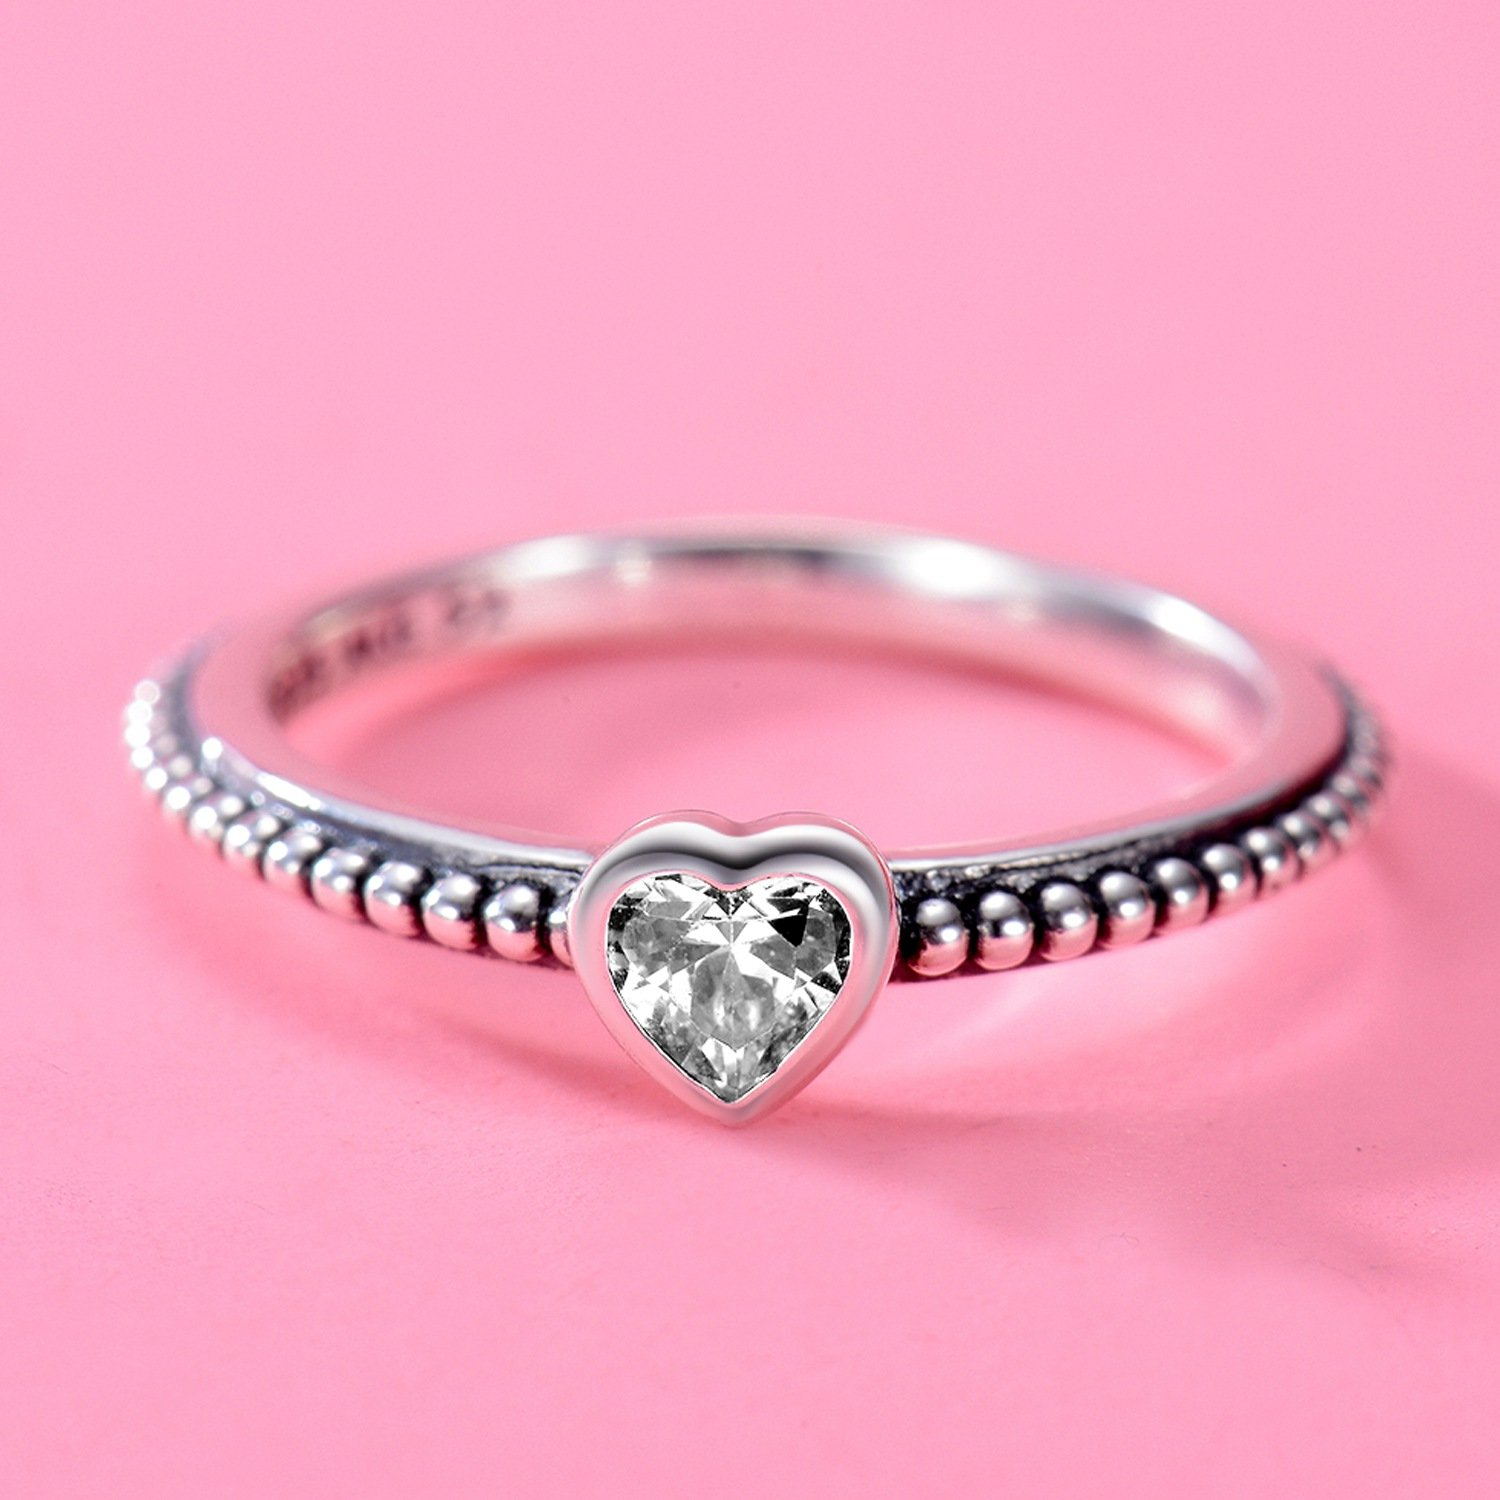 Changeable Solitaire Promise Rings - White Crystals, Solid 925 Sterling Silver # Size 6 (Soul Heart) by Changeable (Image #3)